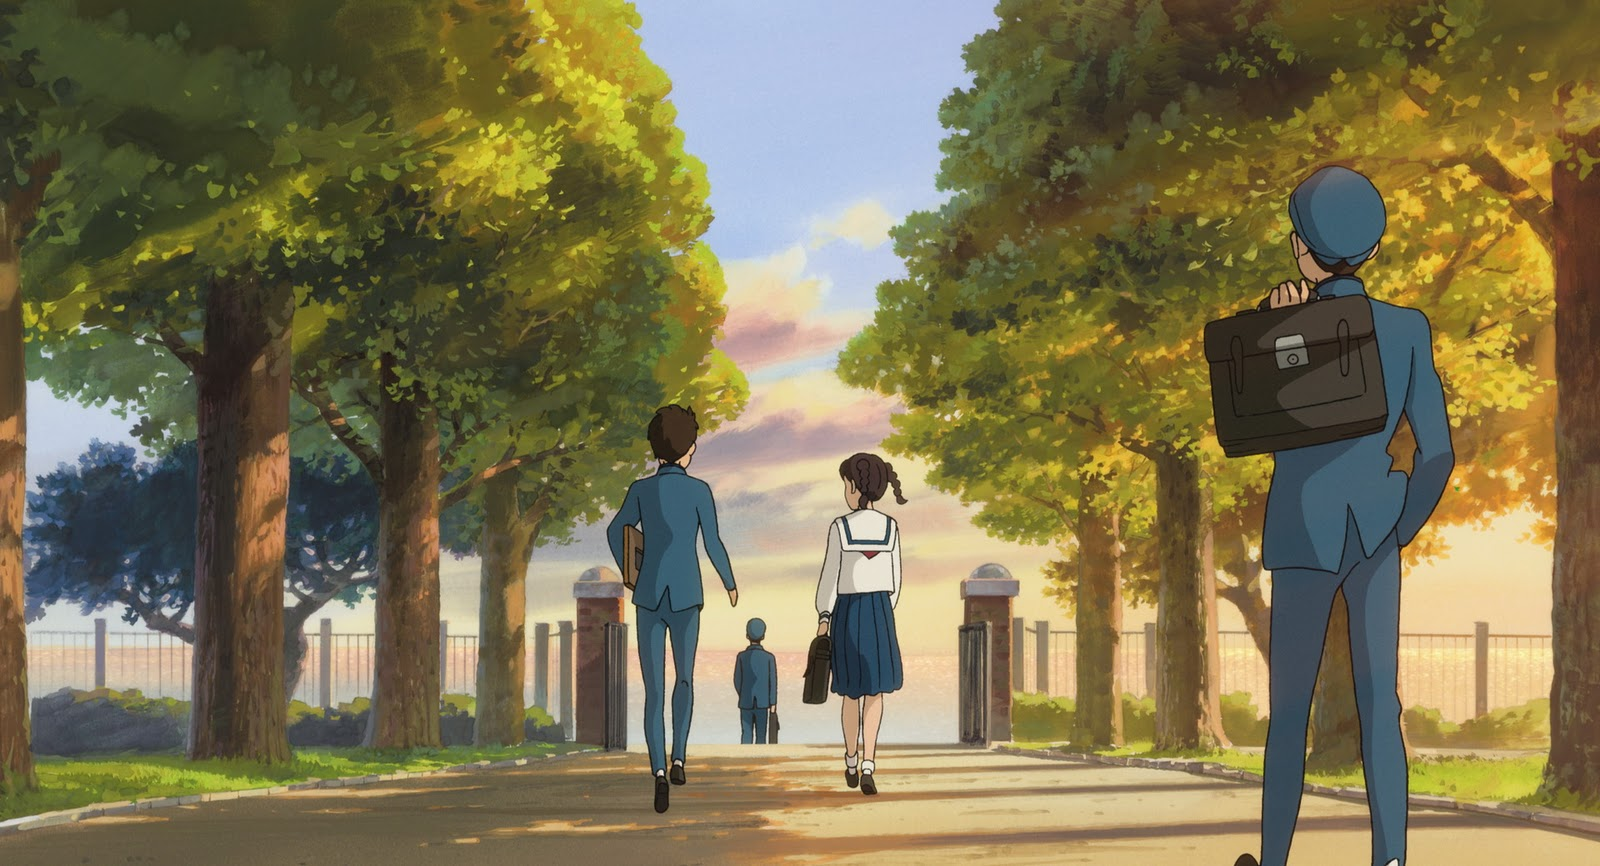 Fall Out Boy Wallpaper Studio Ghibli Debuts First Trailer For From Up On Poppy Hill